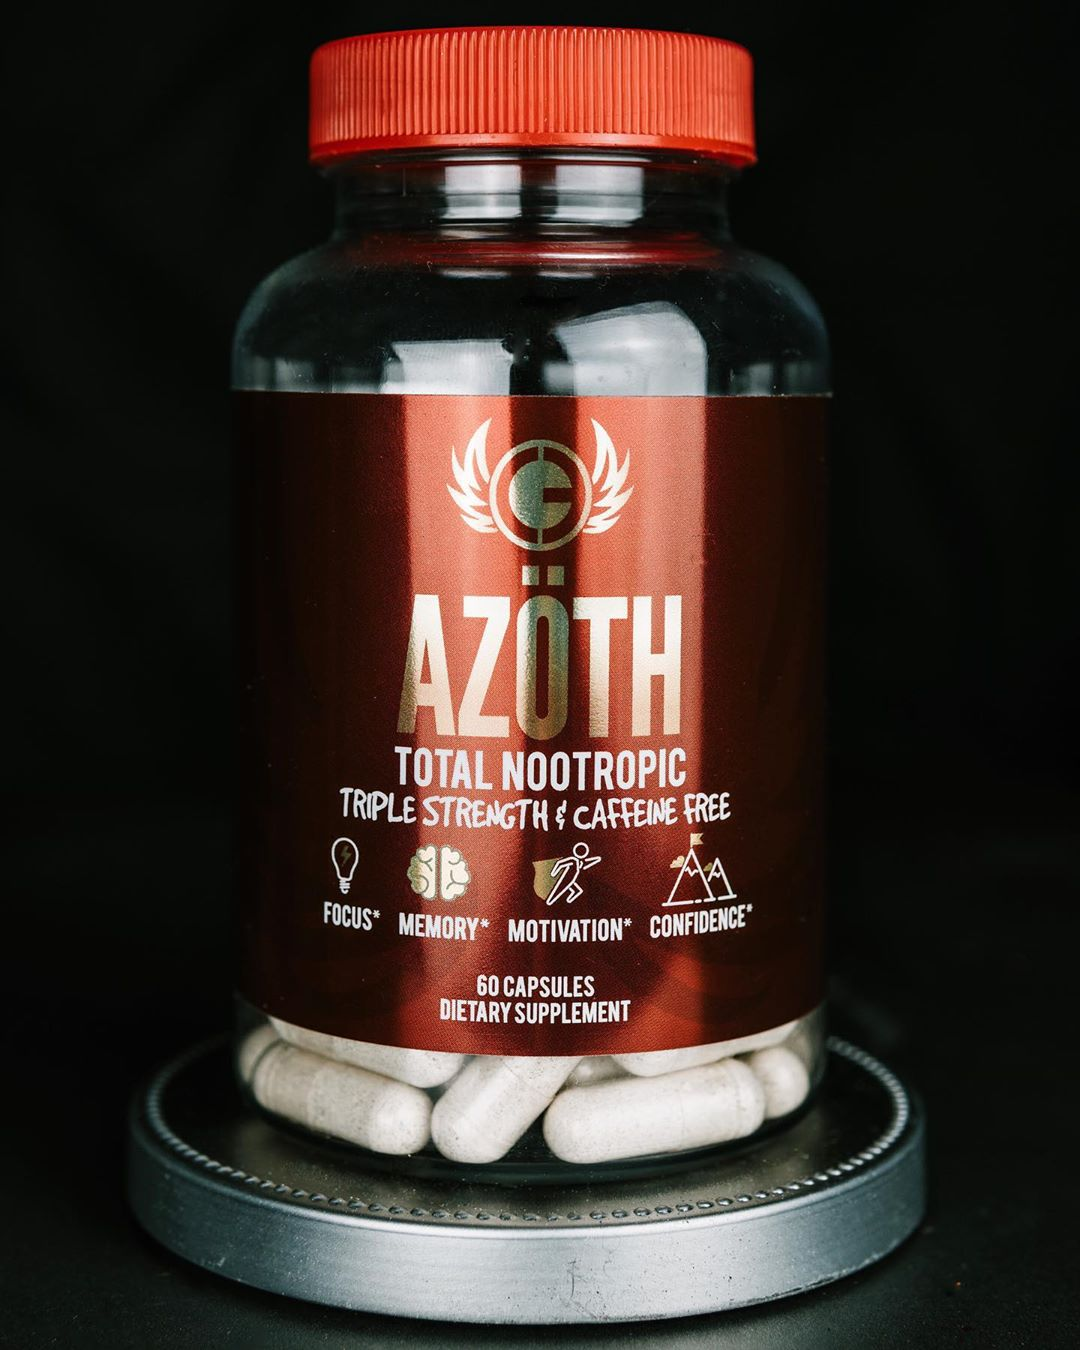 Azoth 2.0 Total Nootropic: Best nootropics backed by science